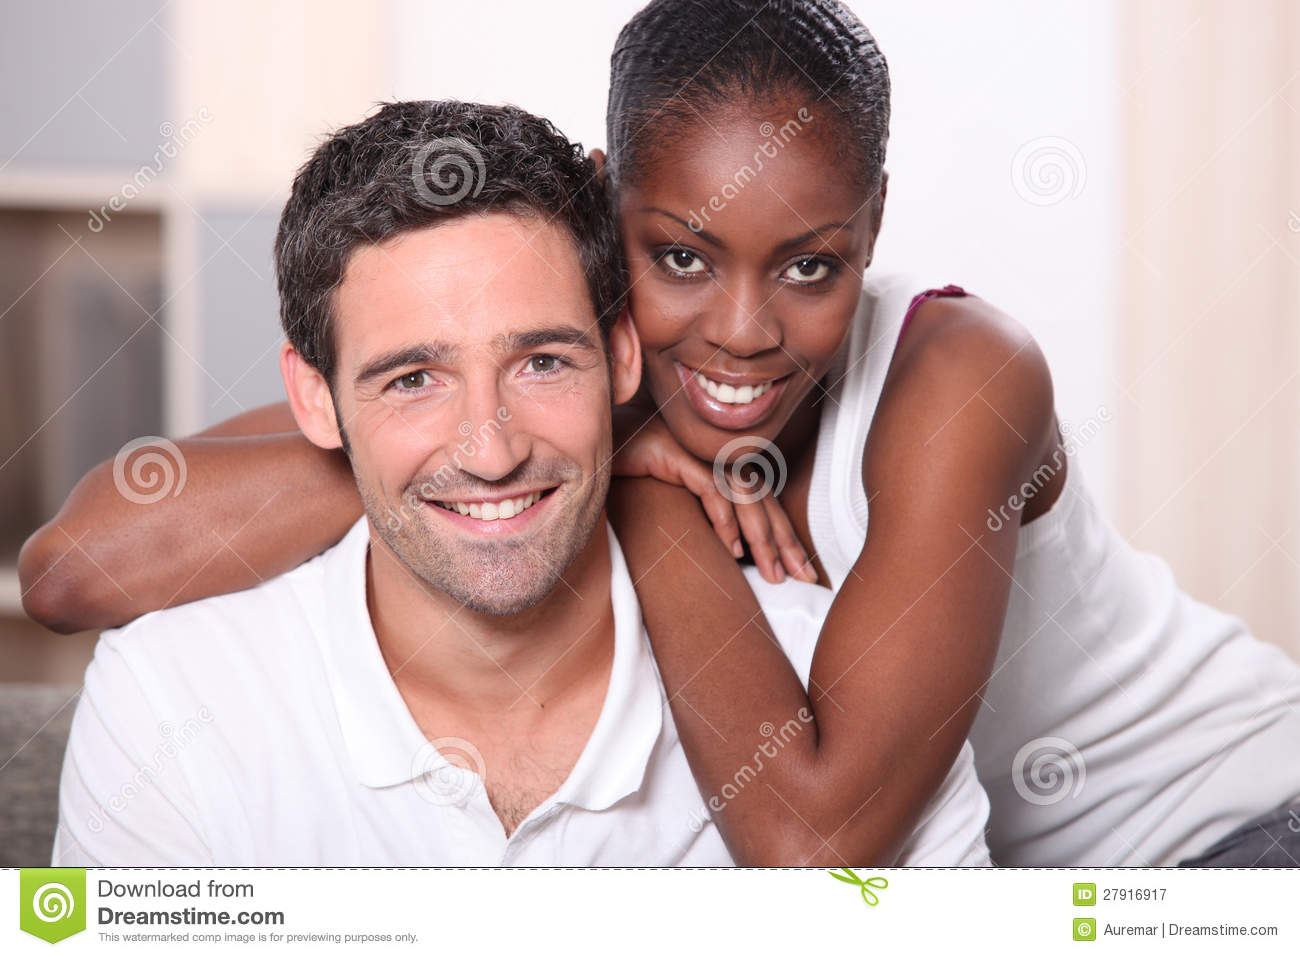 Dating a mixed race person